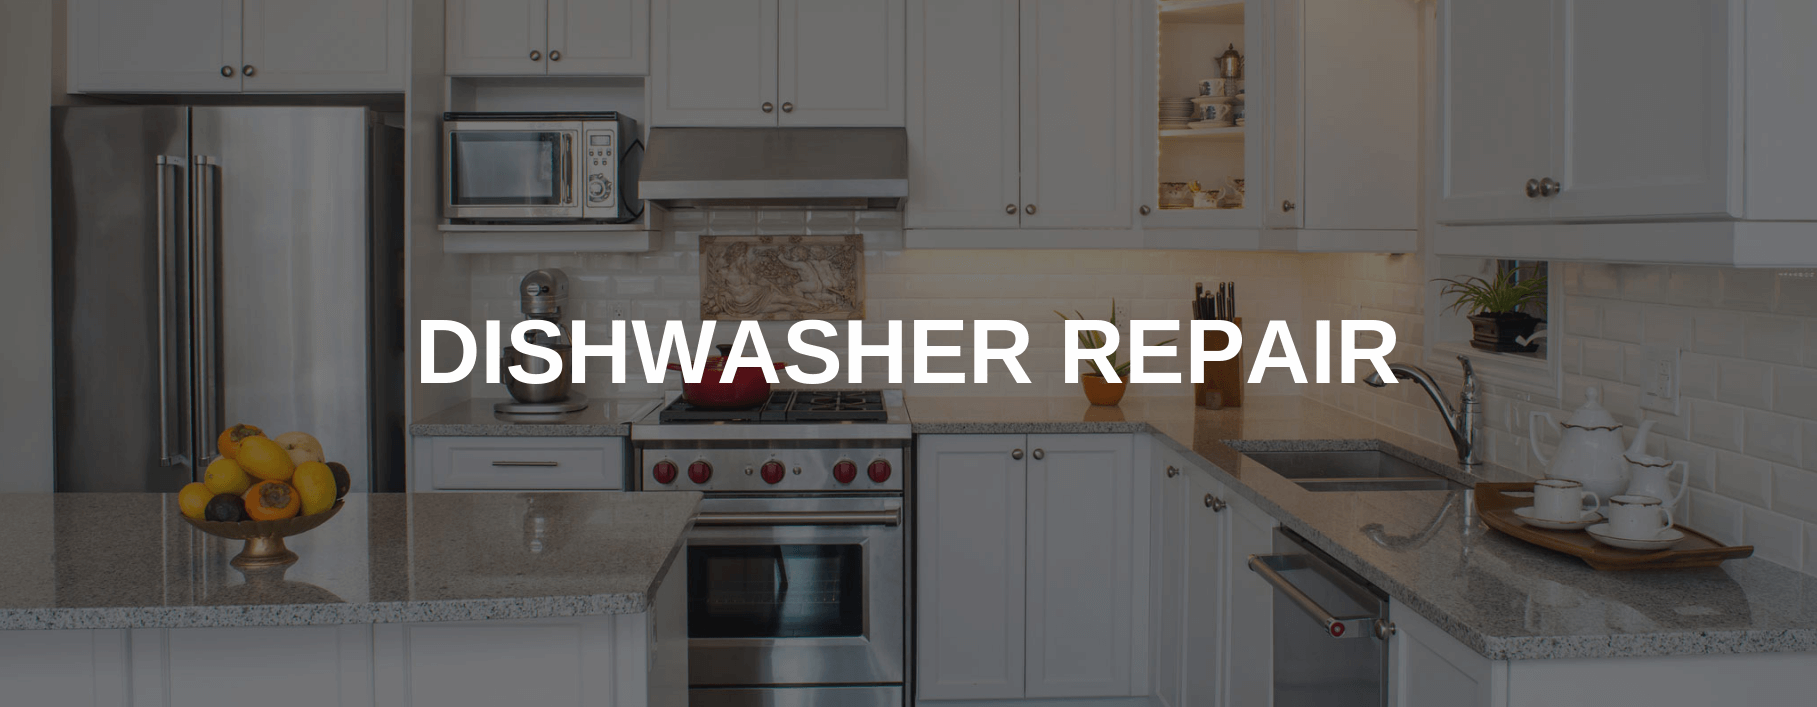 dishwasher repair henderson